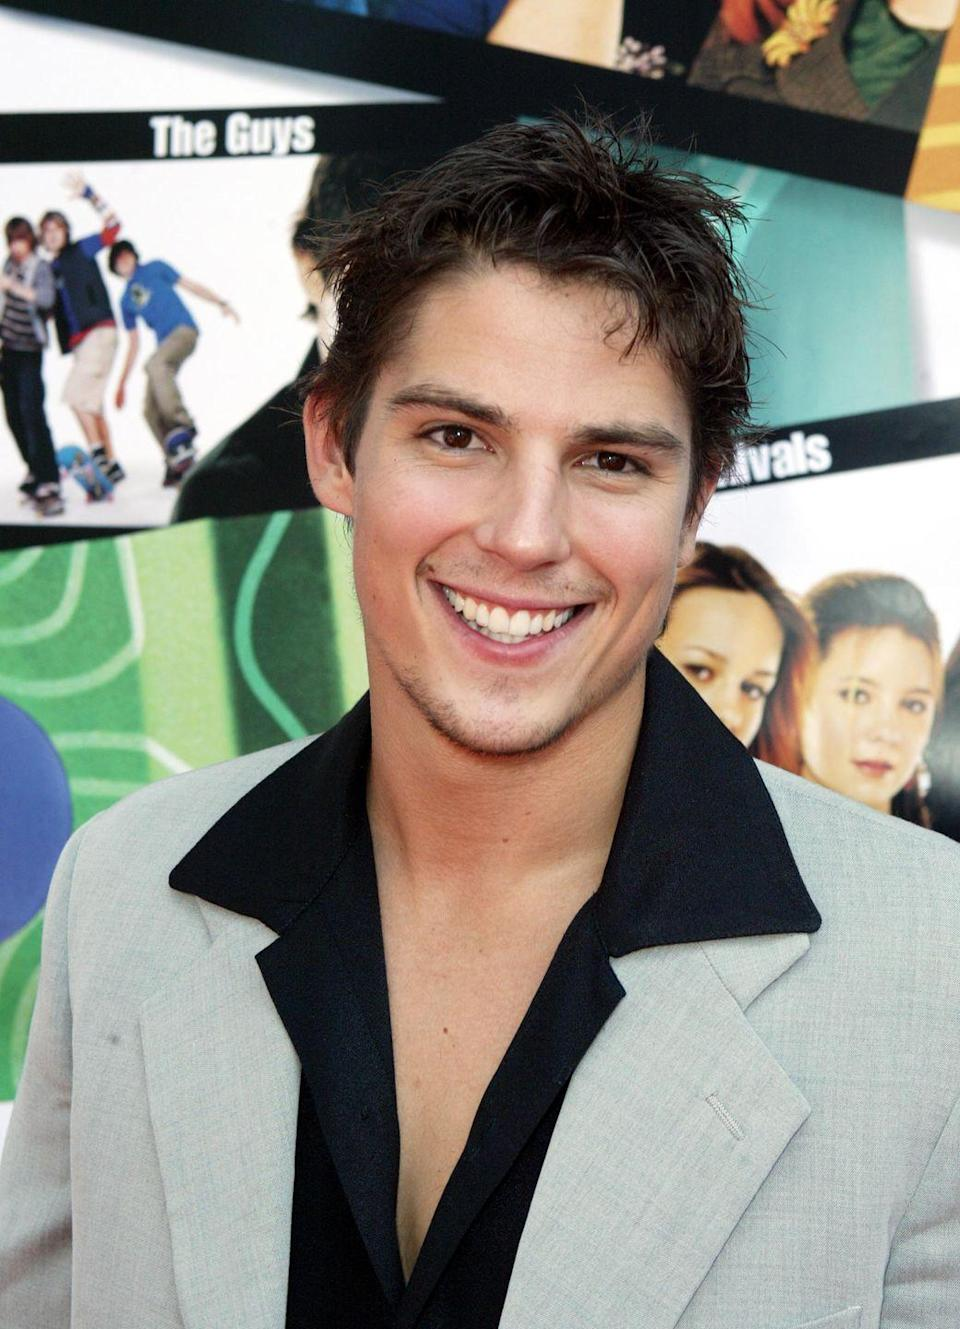 <p>The idea of a high school rising junior (senior?) who looks like Sean Faris circa 2004 having a crush on you when you were going to be a freshman in high school is next-level insane! But we ate it up in the movie <em>Sleepover.</em></p>